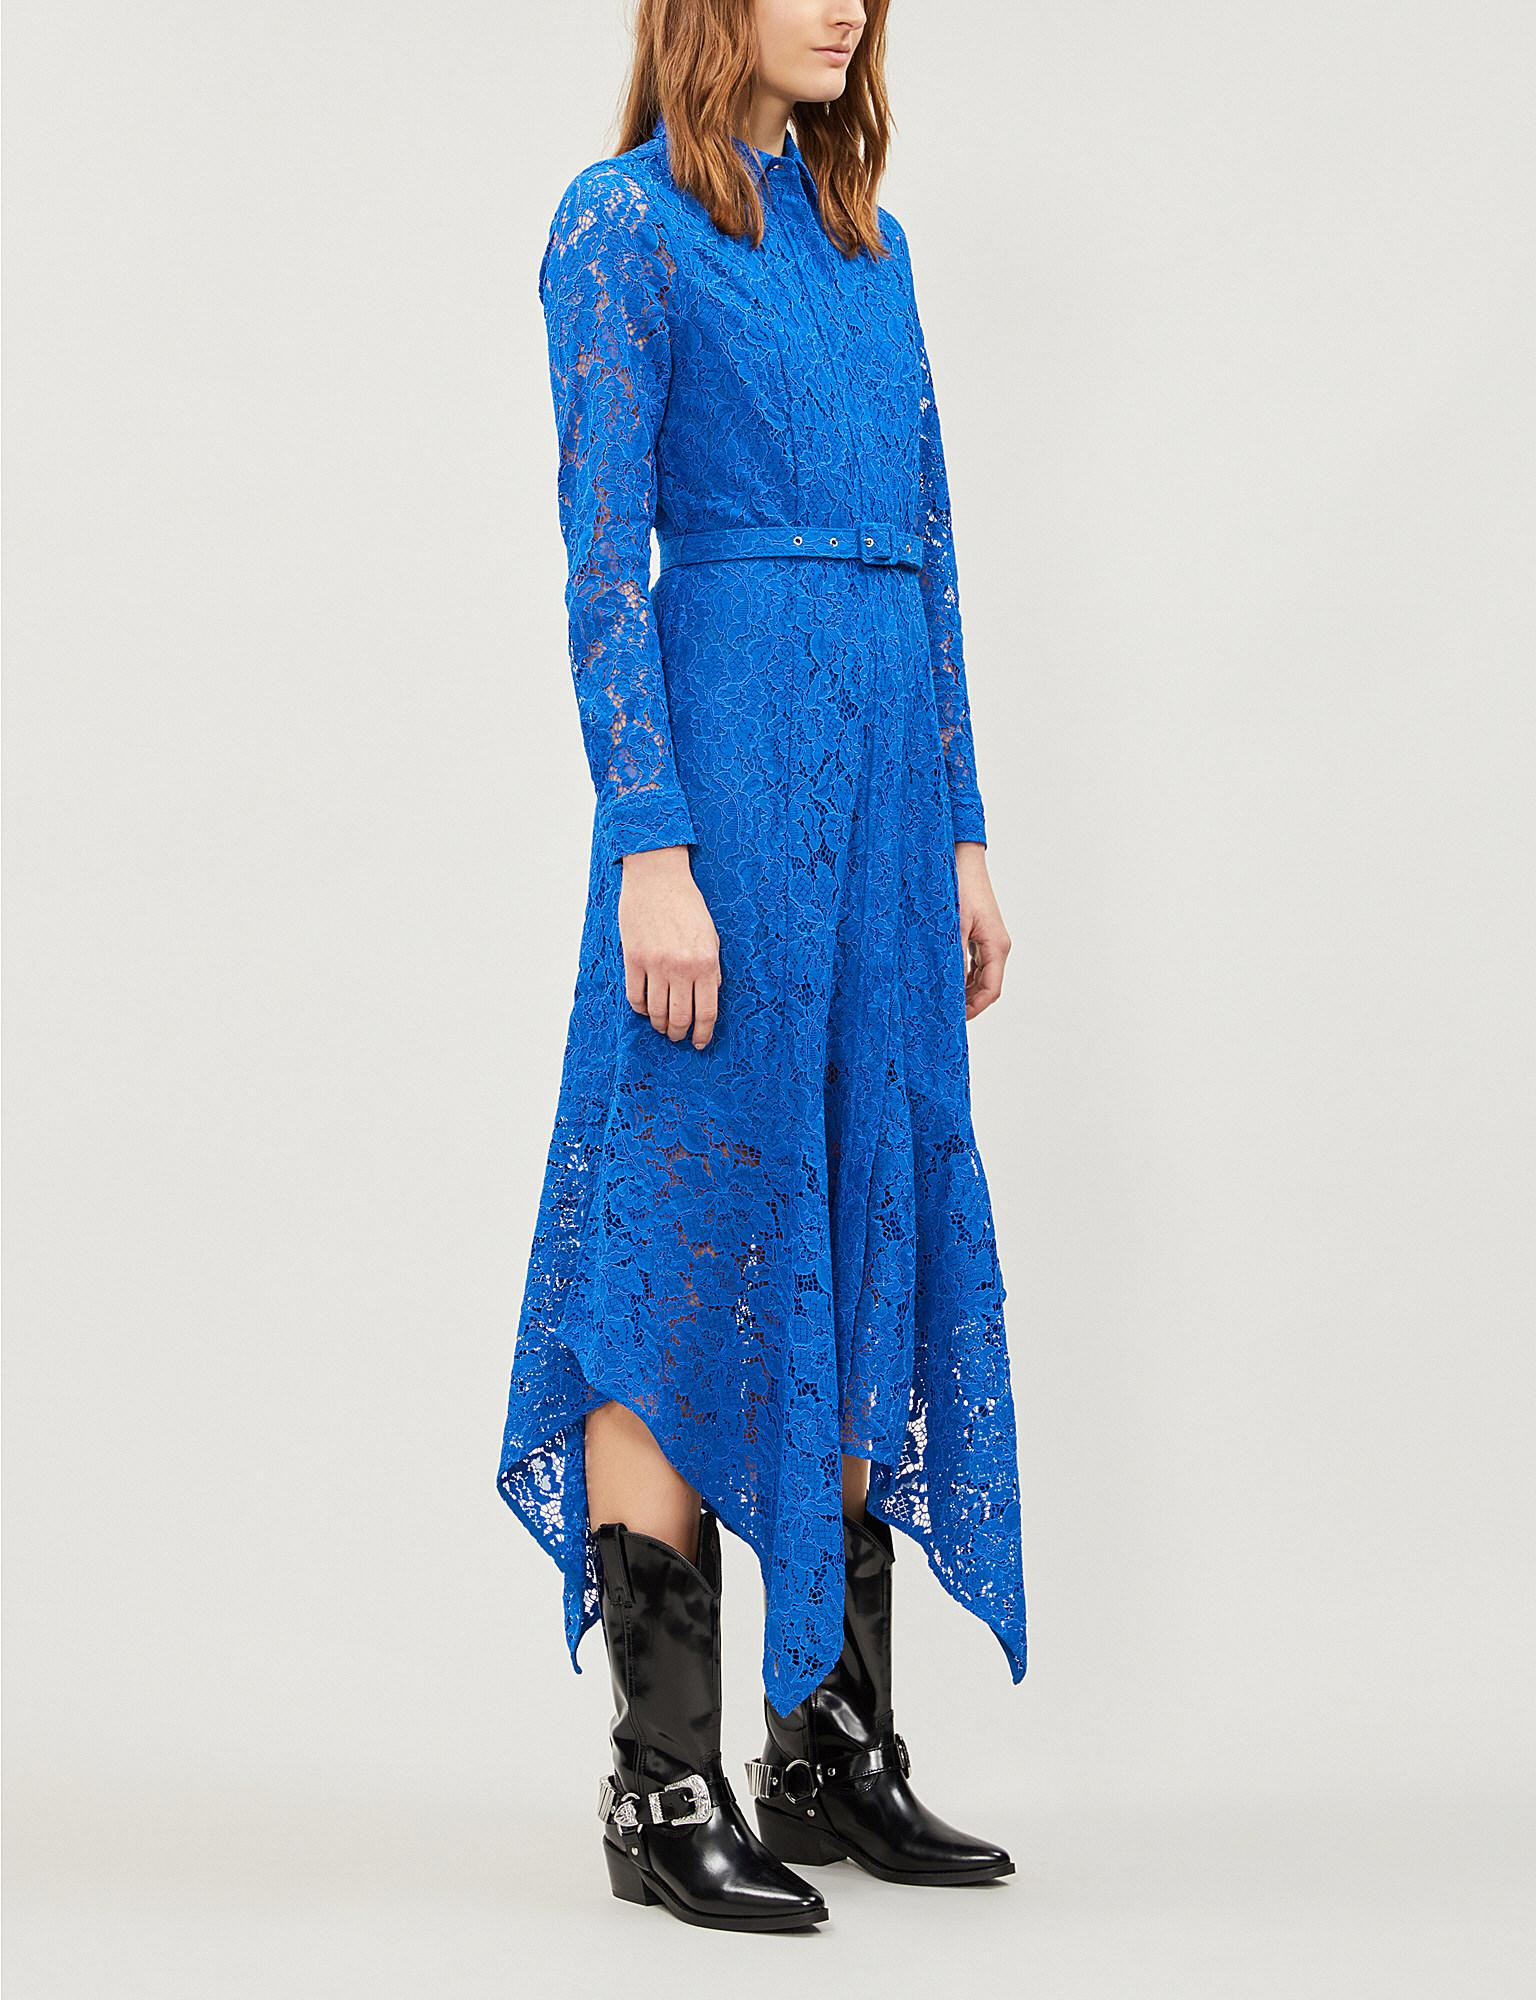 5aee4bc0 Ganni Everdale Lace Midi Dress in Blue - Save 17% - Lyst